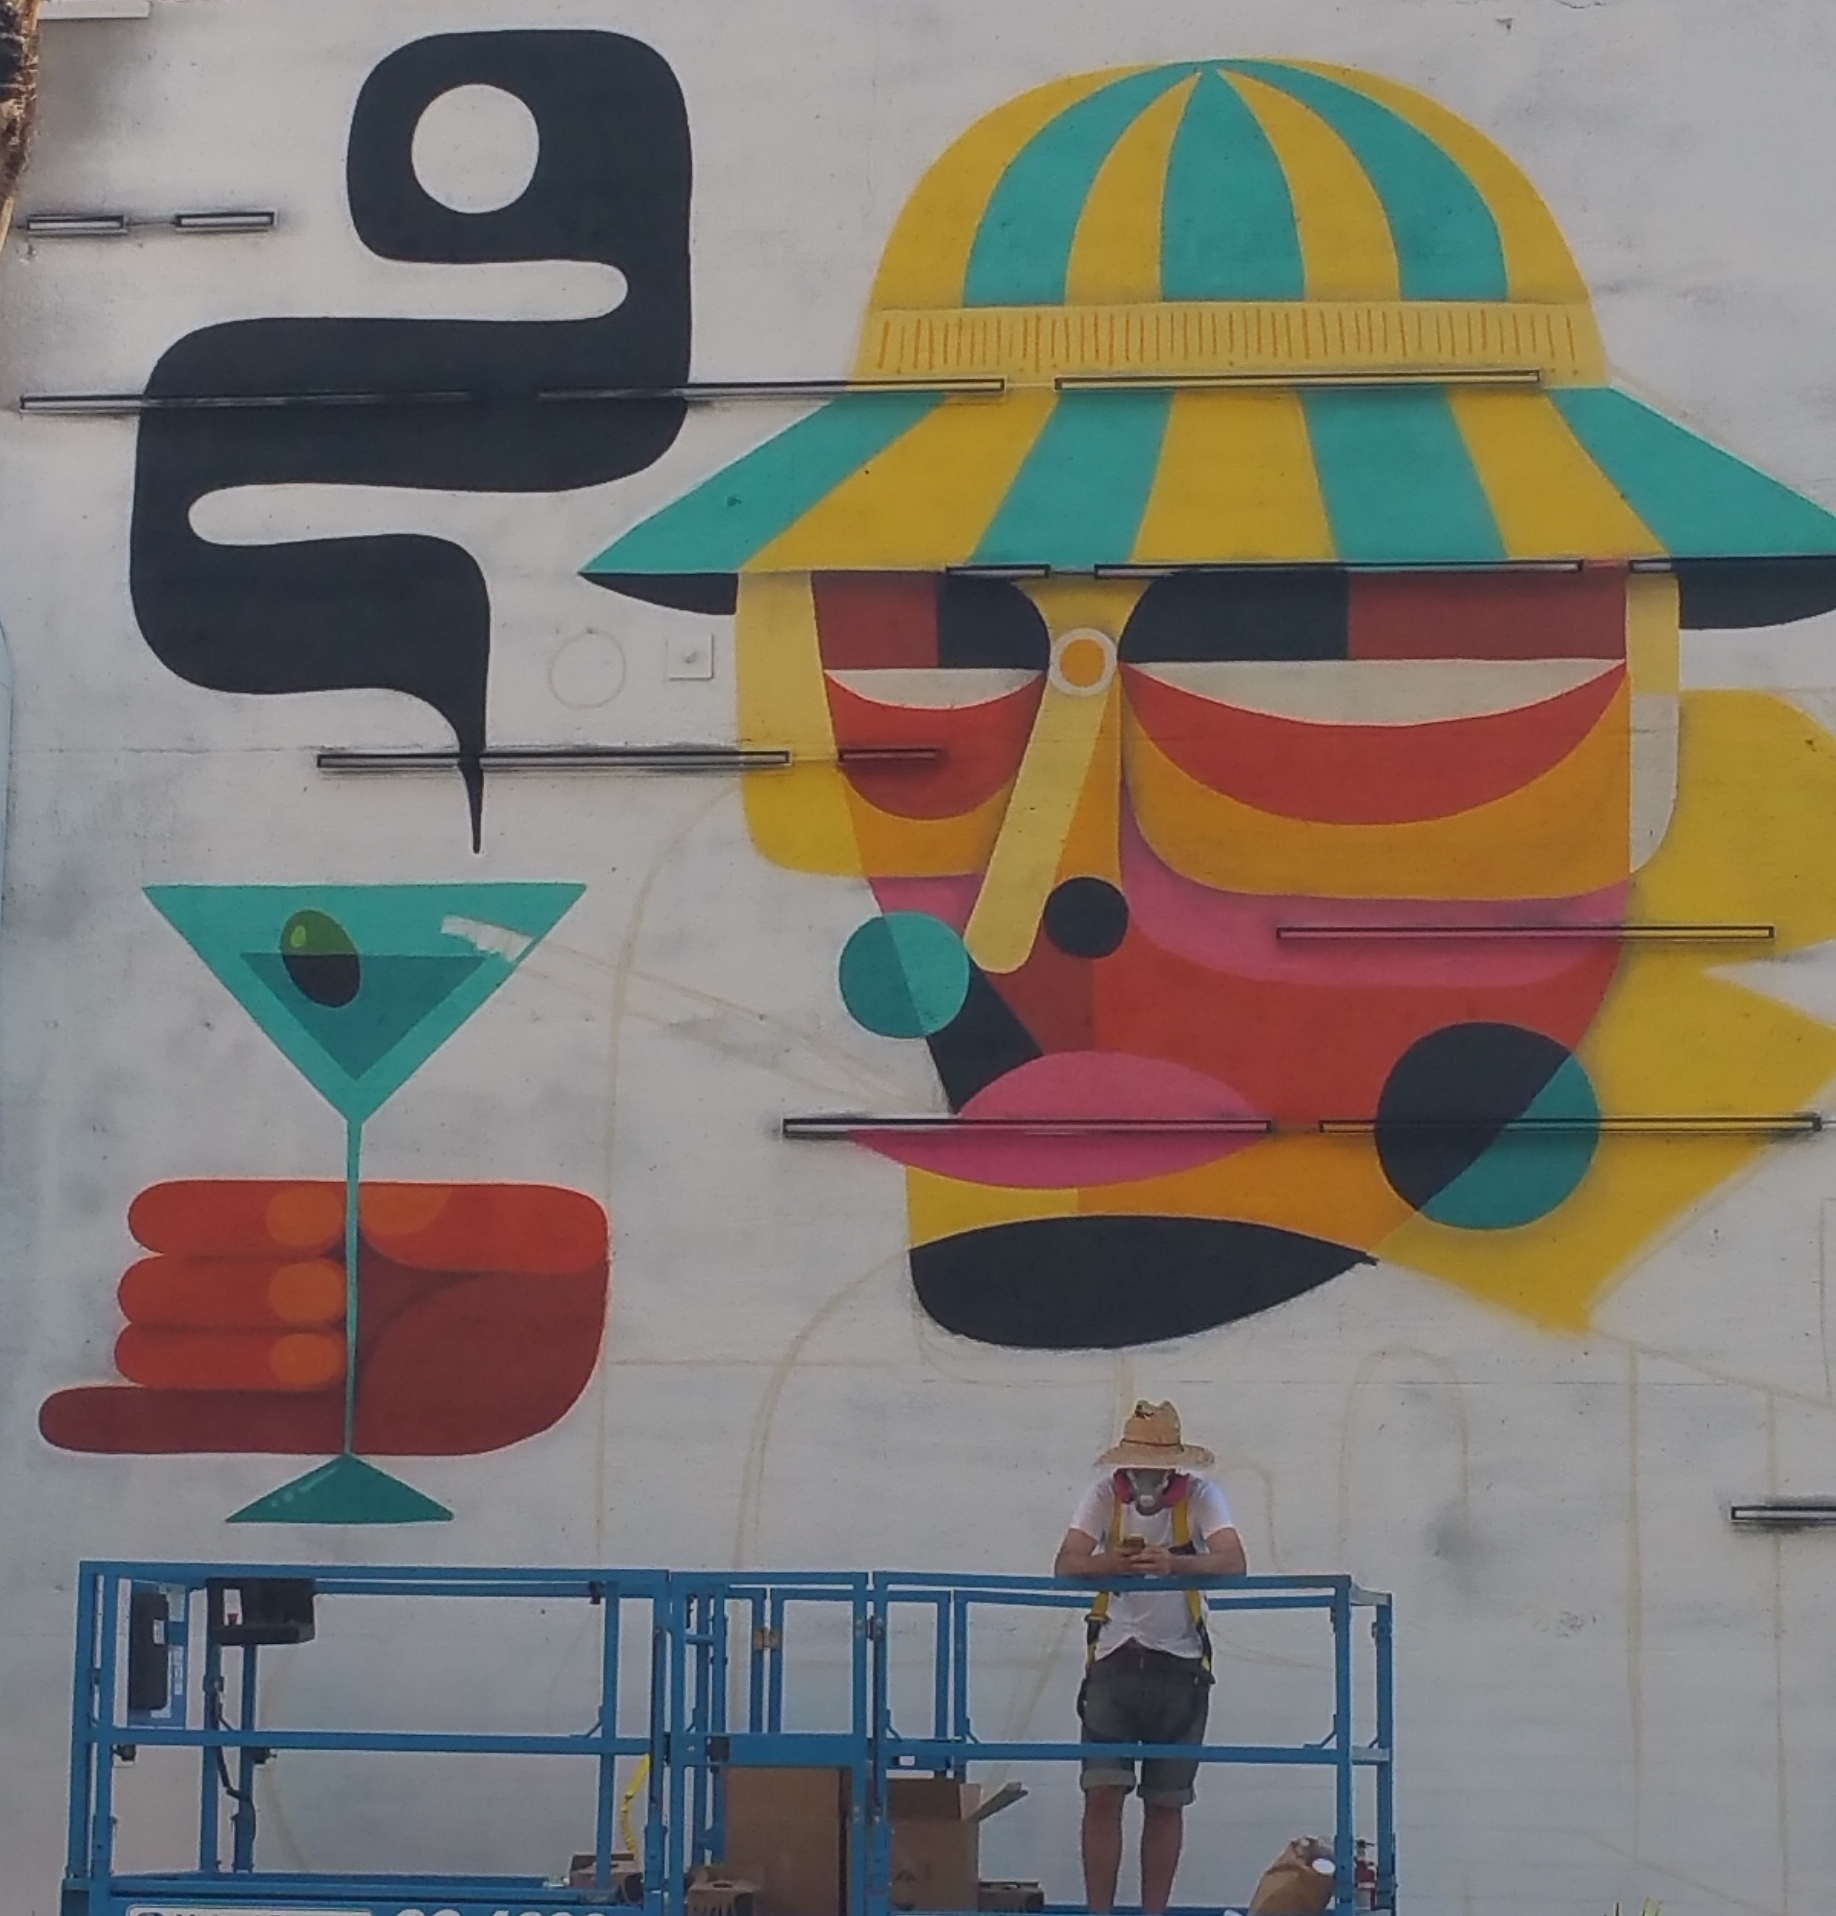 This guy was in the middle of creating the wall art.